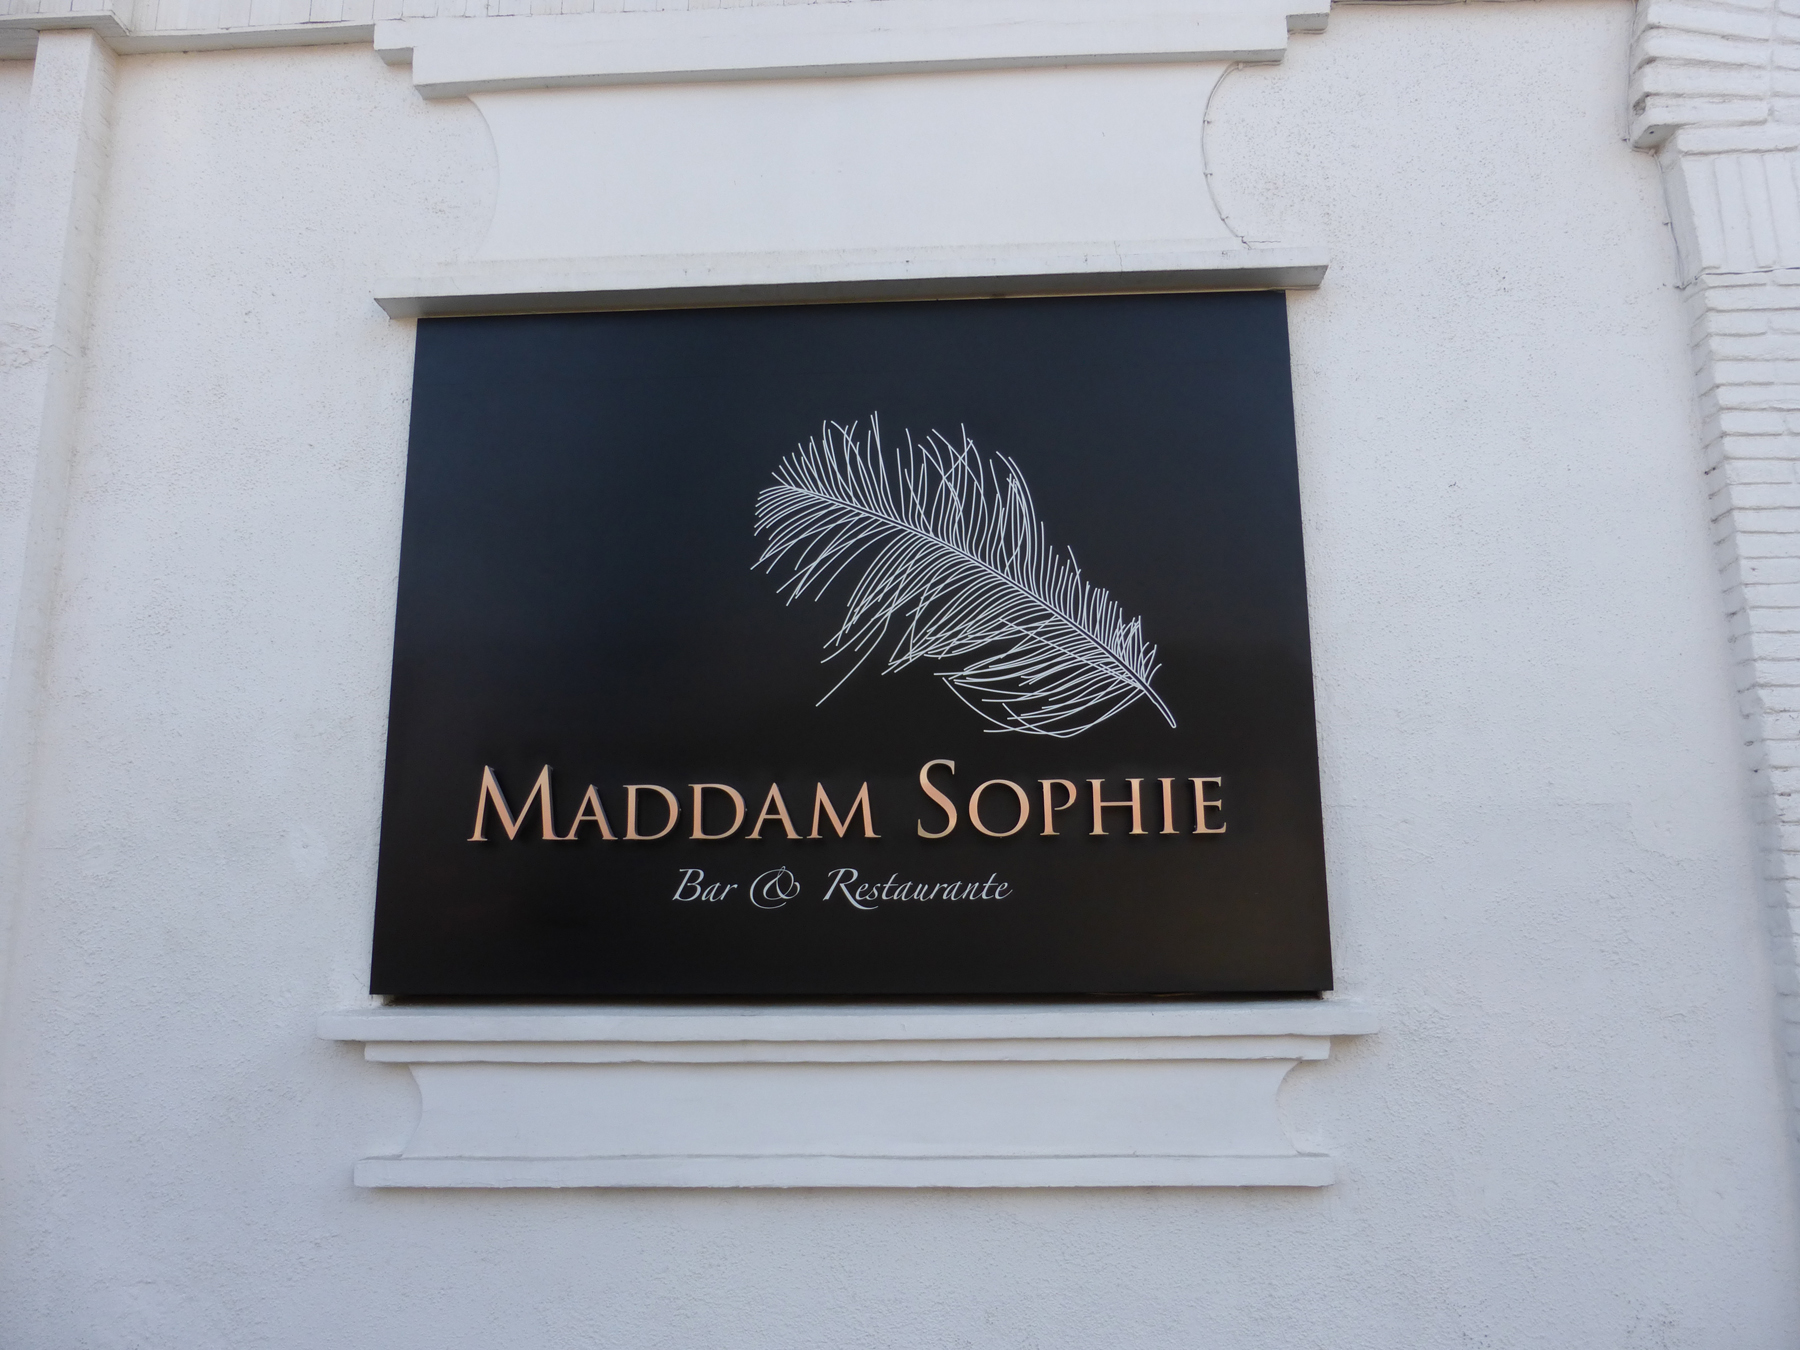 ...two blocks away, we saw this!  So, it's Maddam Sophie now?